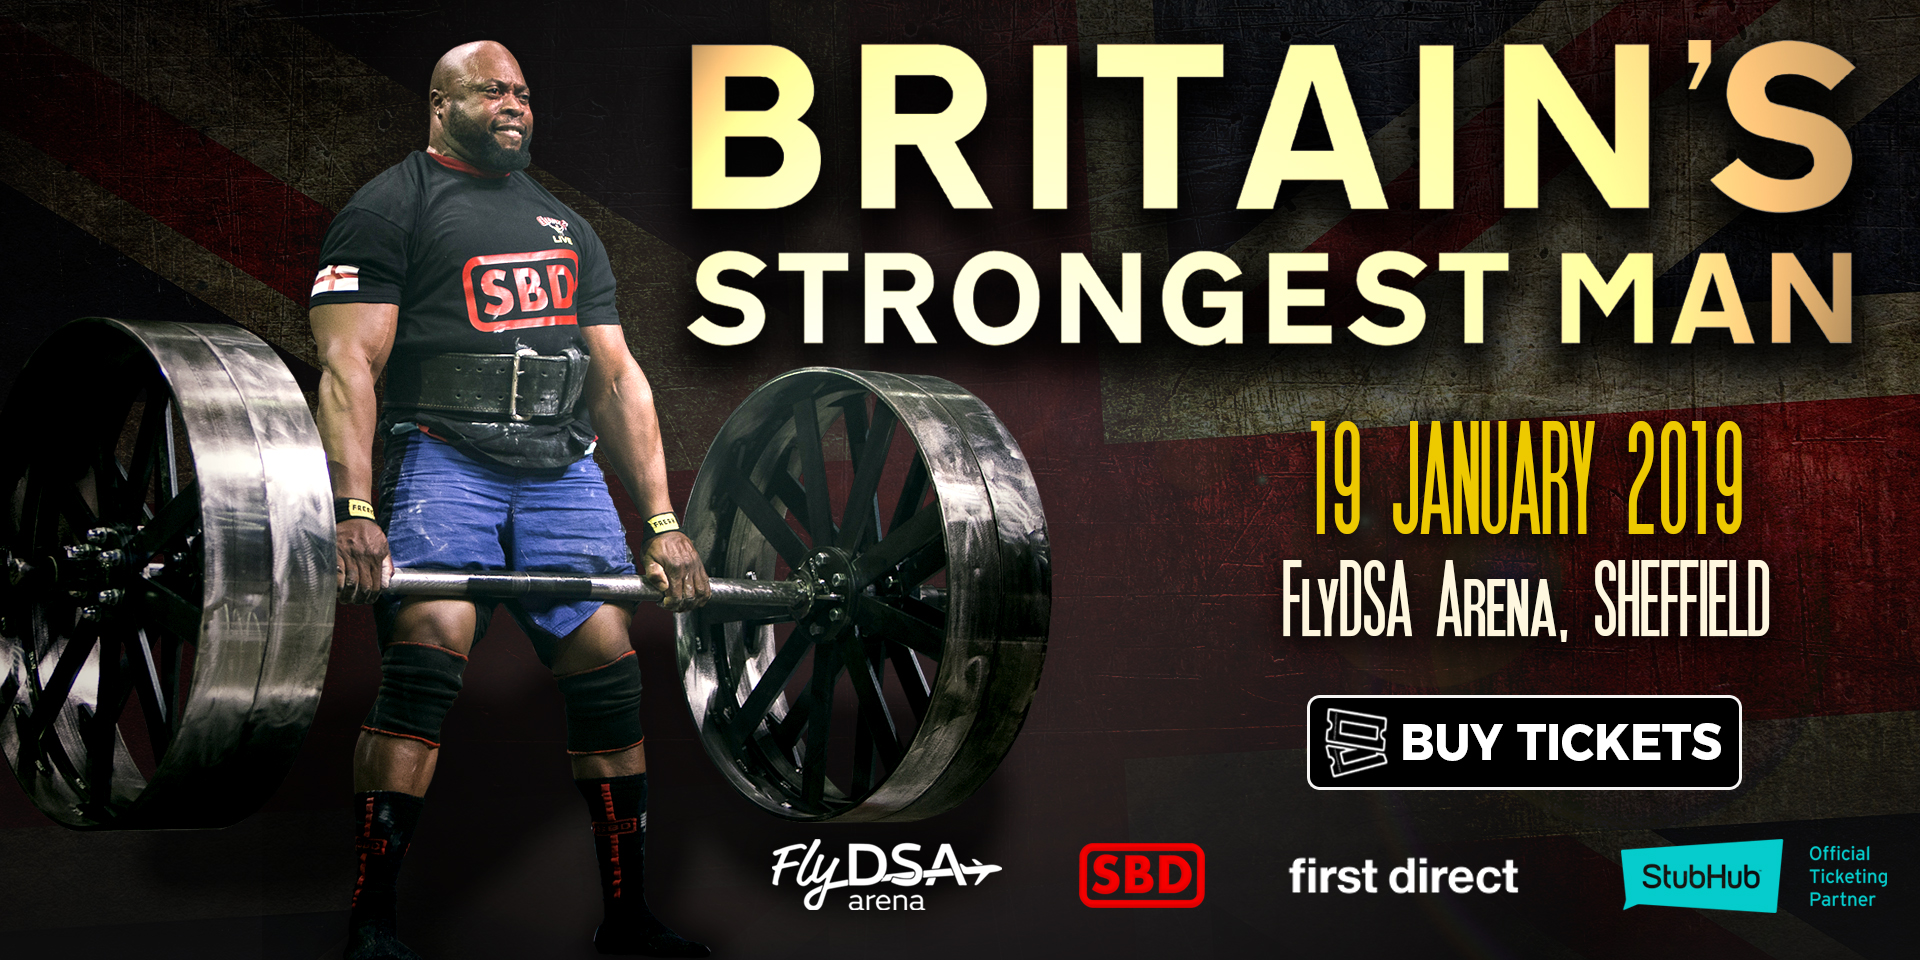 The greatest Strongmen in Britain come to the city of STEEL for Britain's Strongest Man 2019 at FlyDSA Arena Sheffield!